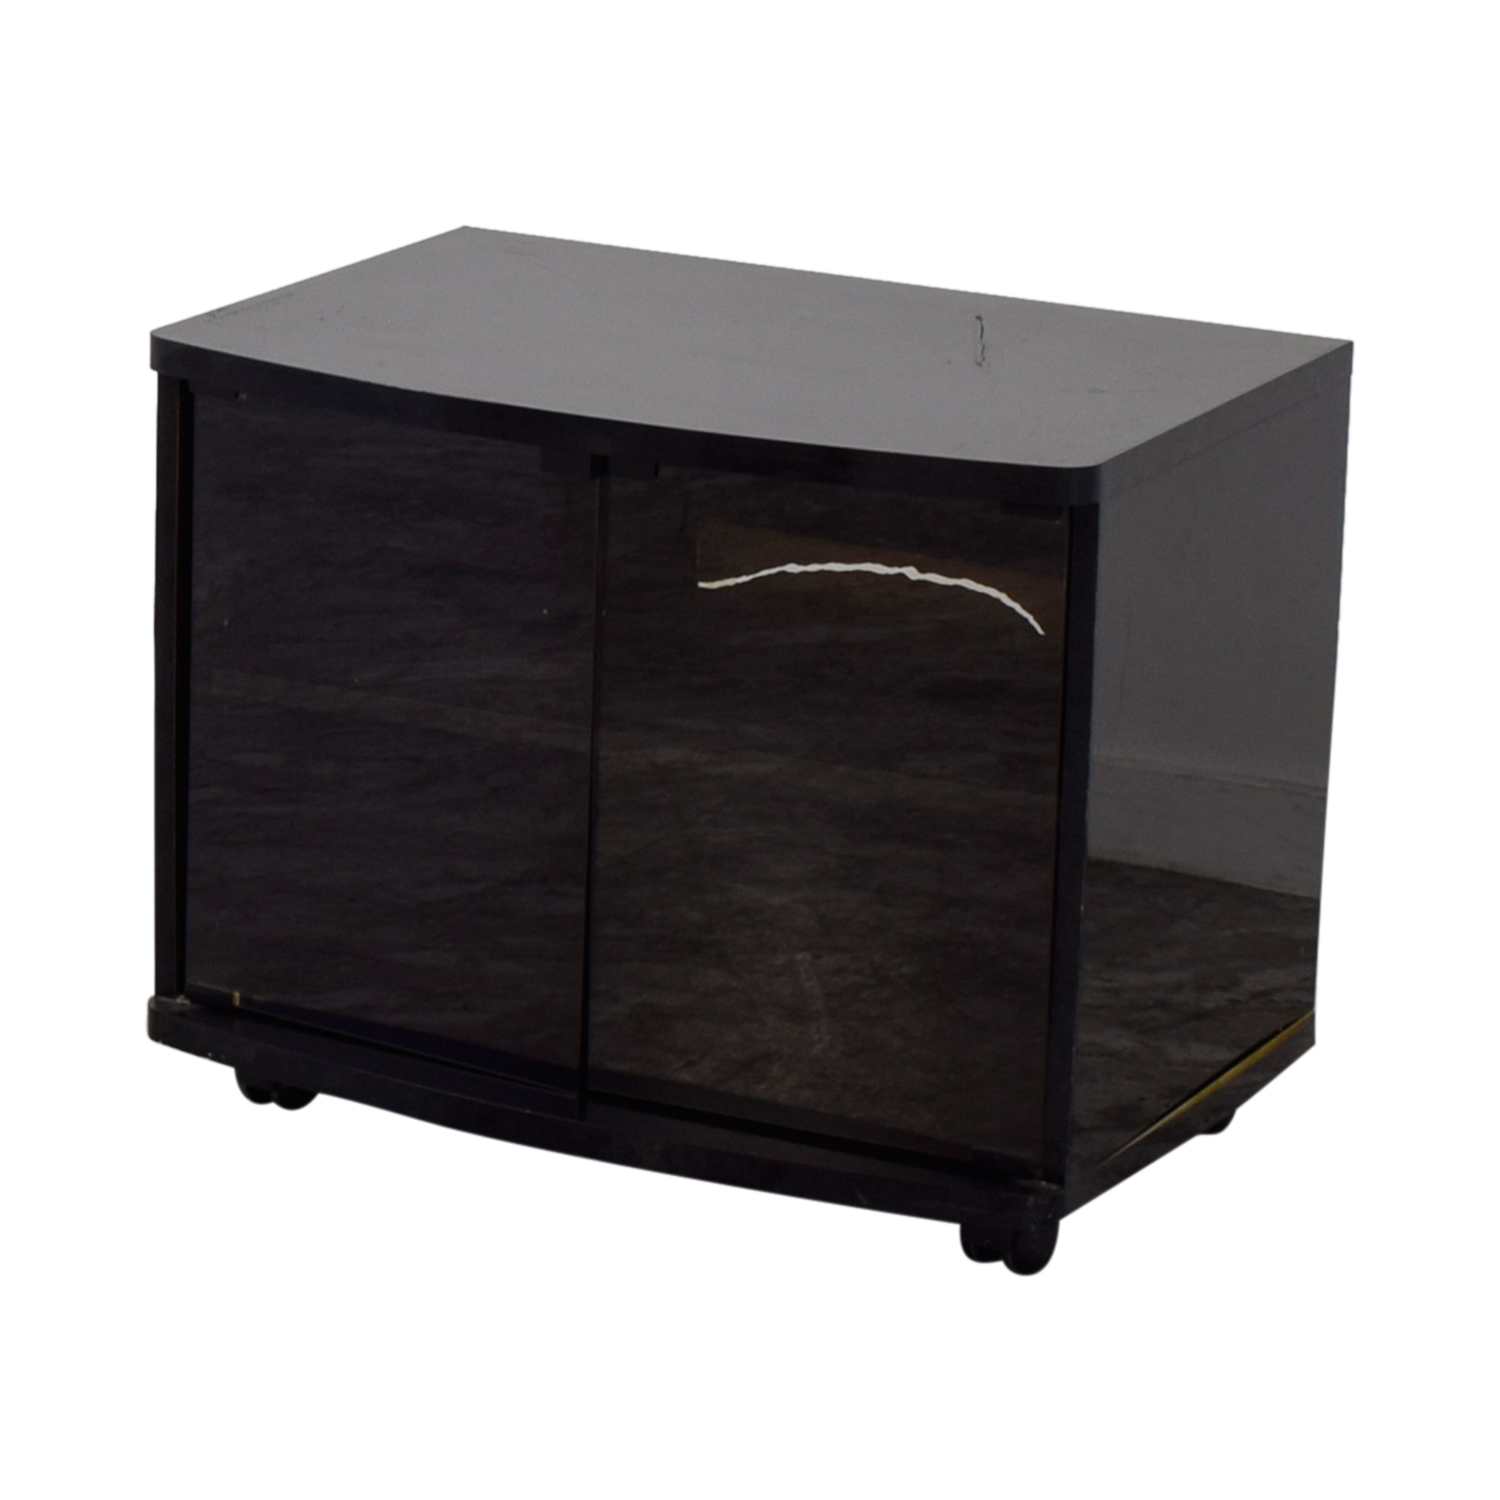 90% OFF - Black Lacquer and Glass Door TV Stand / Storage